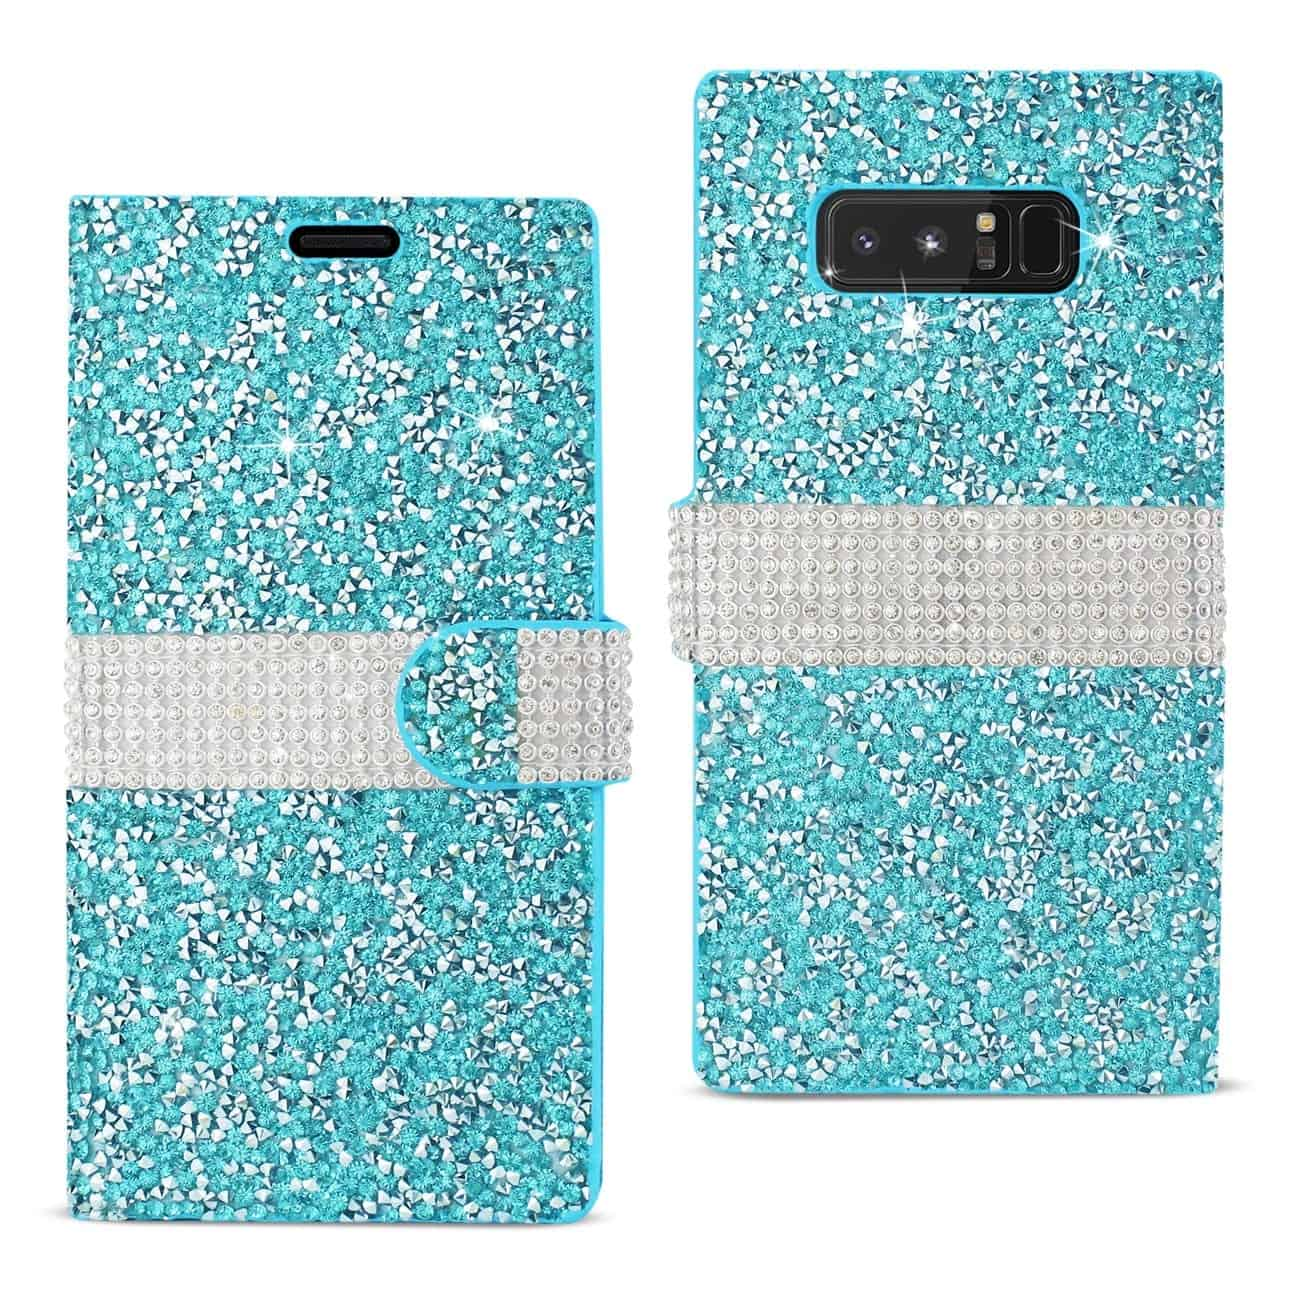 SAMSUNG GALAXY NOTE 8 DIAMOND RHINESTONE WALLET CASE IN BLUE